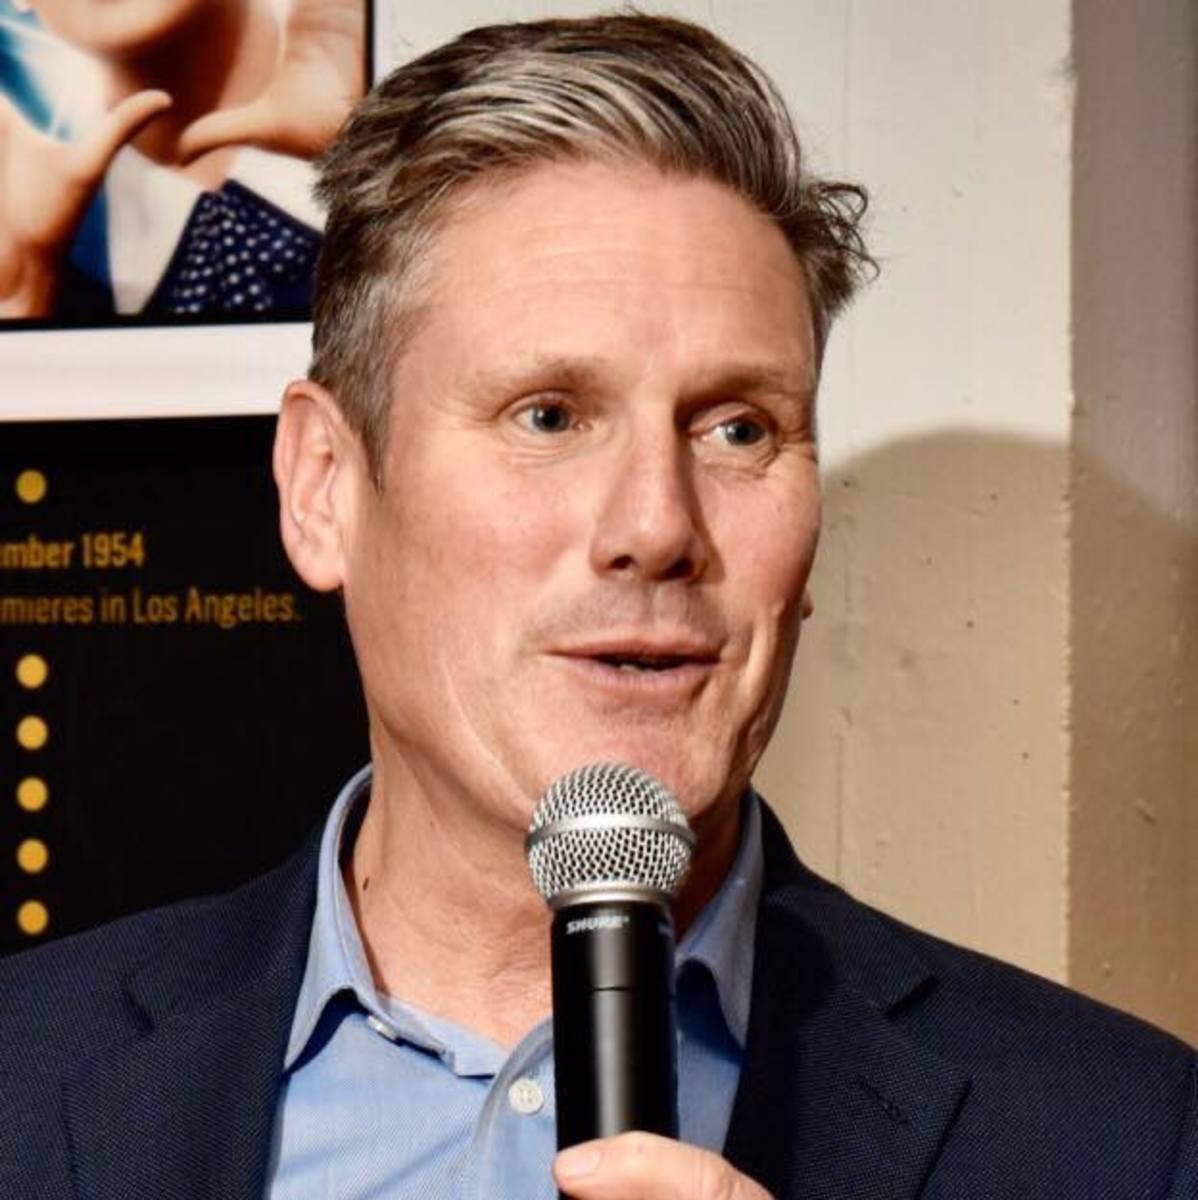 Sir Keir Starmer:  Hoping to put to bed antismeitism.